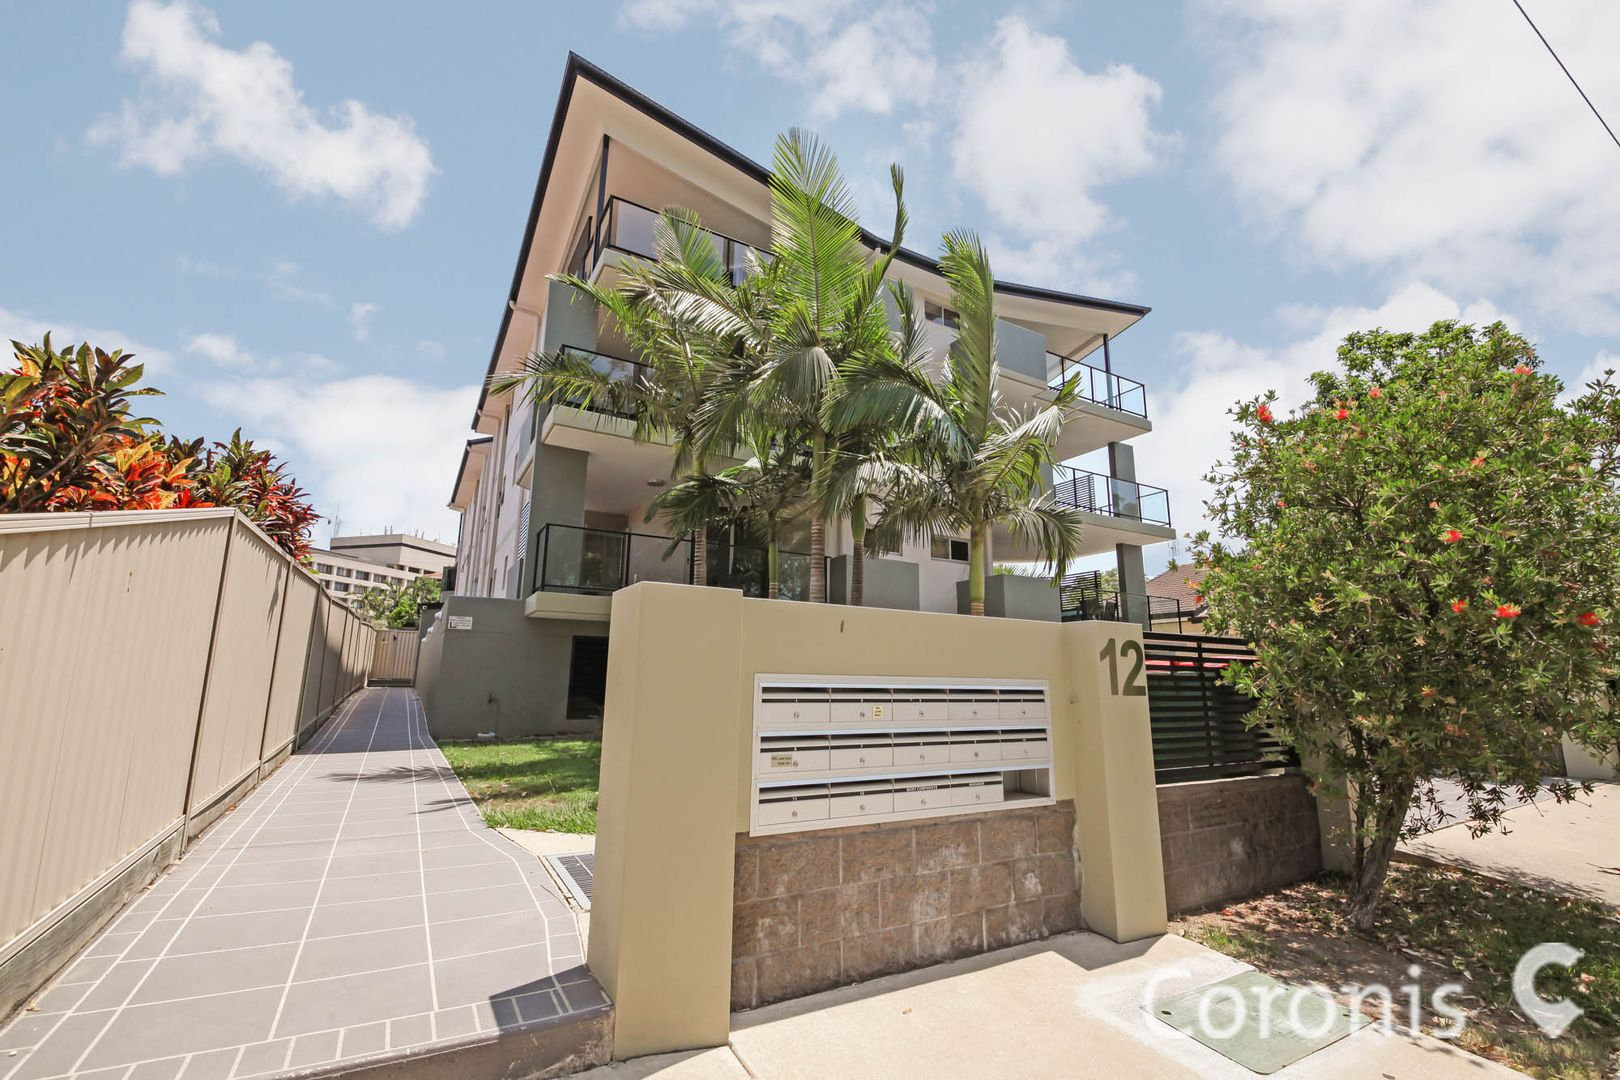 3/12 Portwood Street, Redcliffe QLD 4020, Image 0